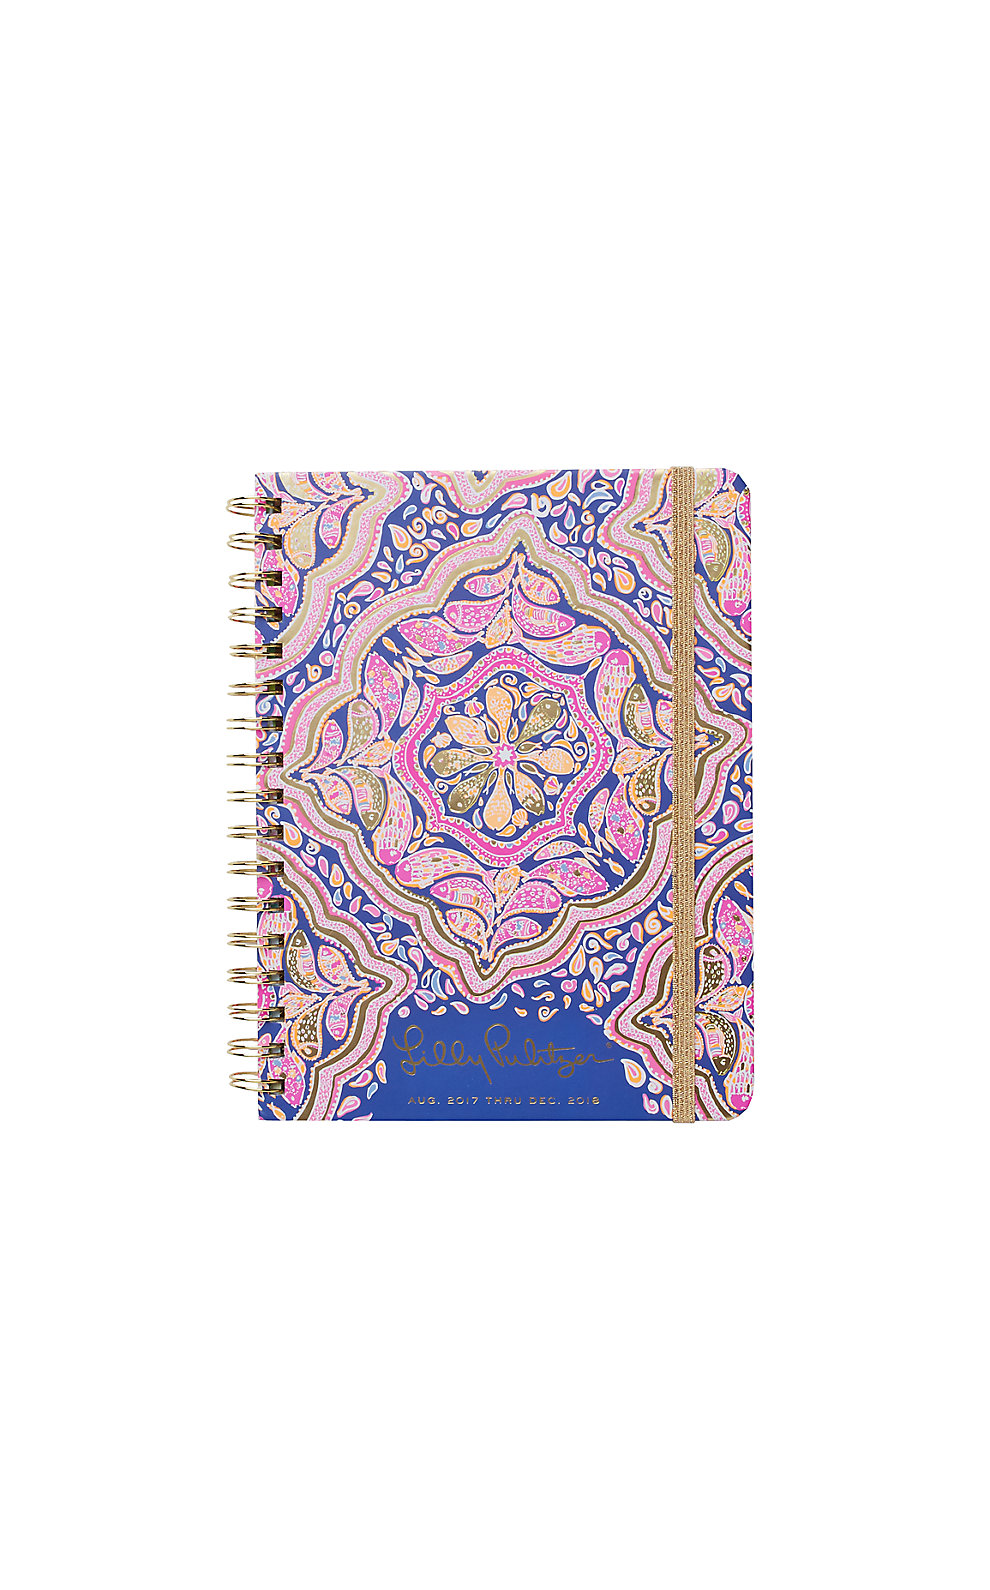 Lilly Pulitzer 2017-2018 Monthly Agenda - Can't Resist